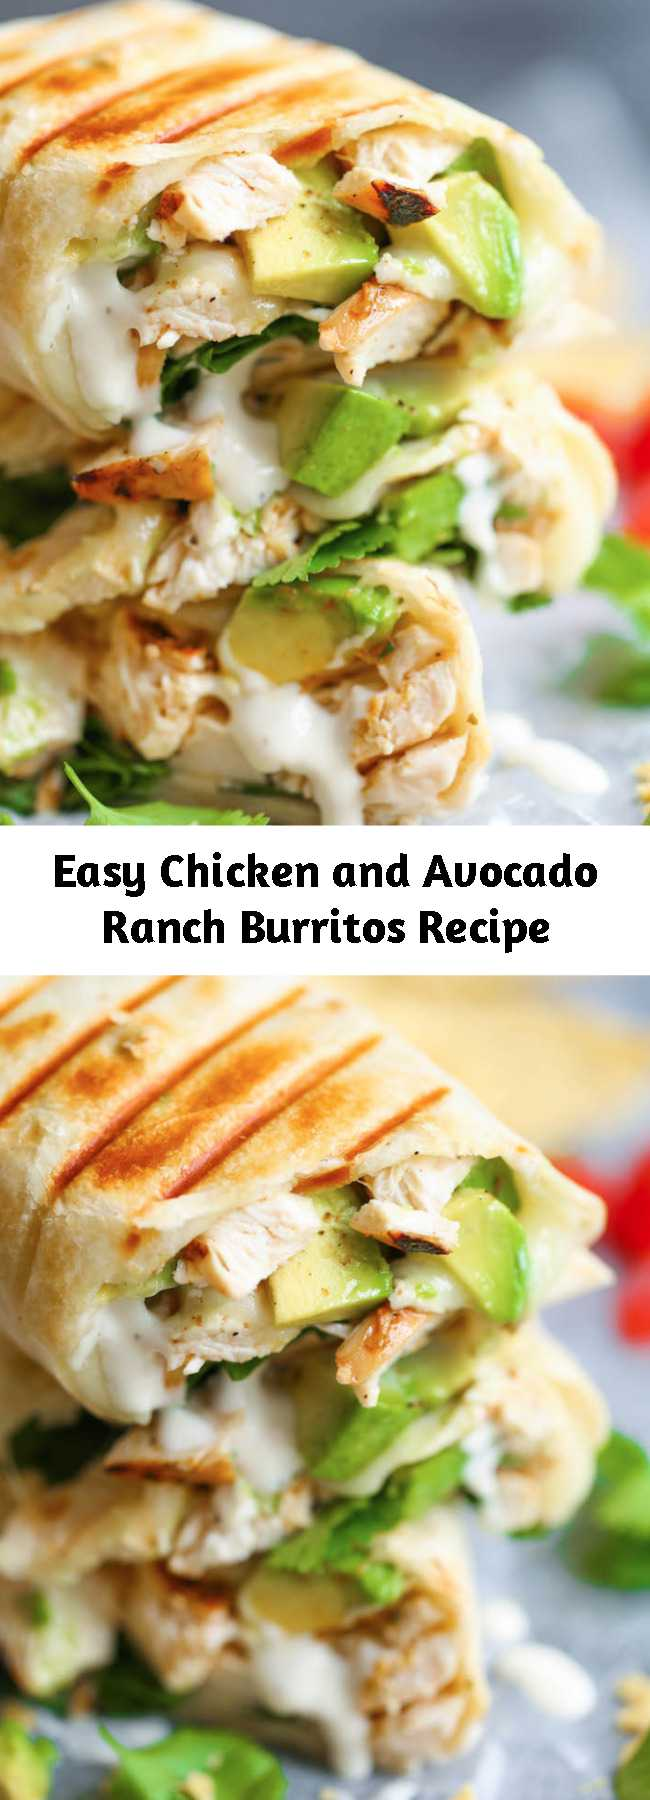 Easy Chicken and Avocado Ranch Burritos Recipe - These come together with just 15 min prep! You can also make this ahead of time and bake right before serving. SO EASY!